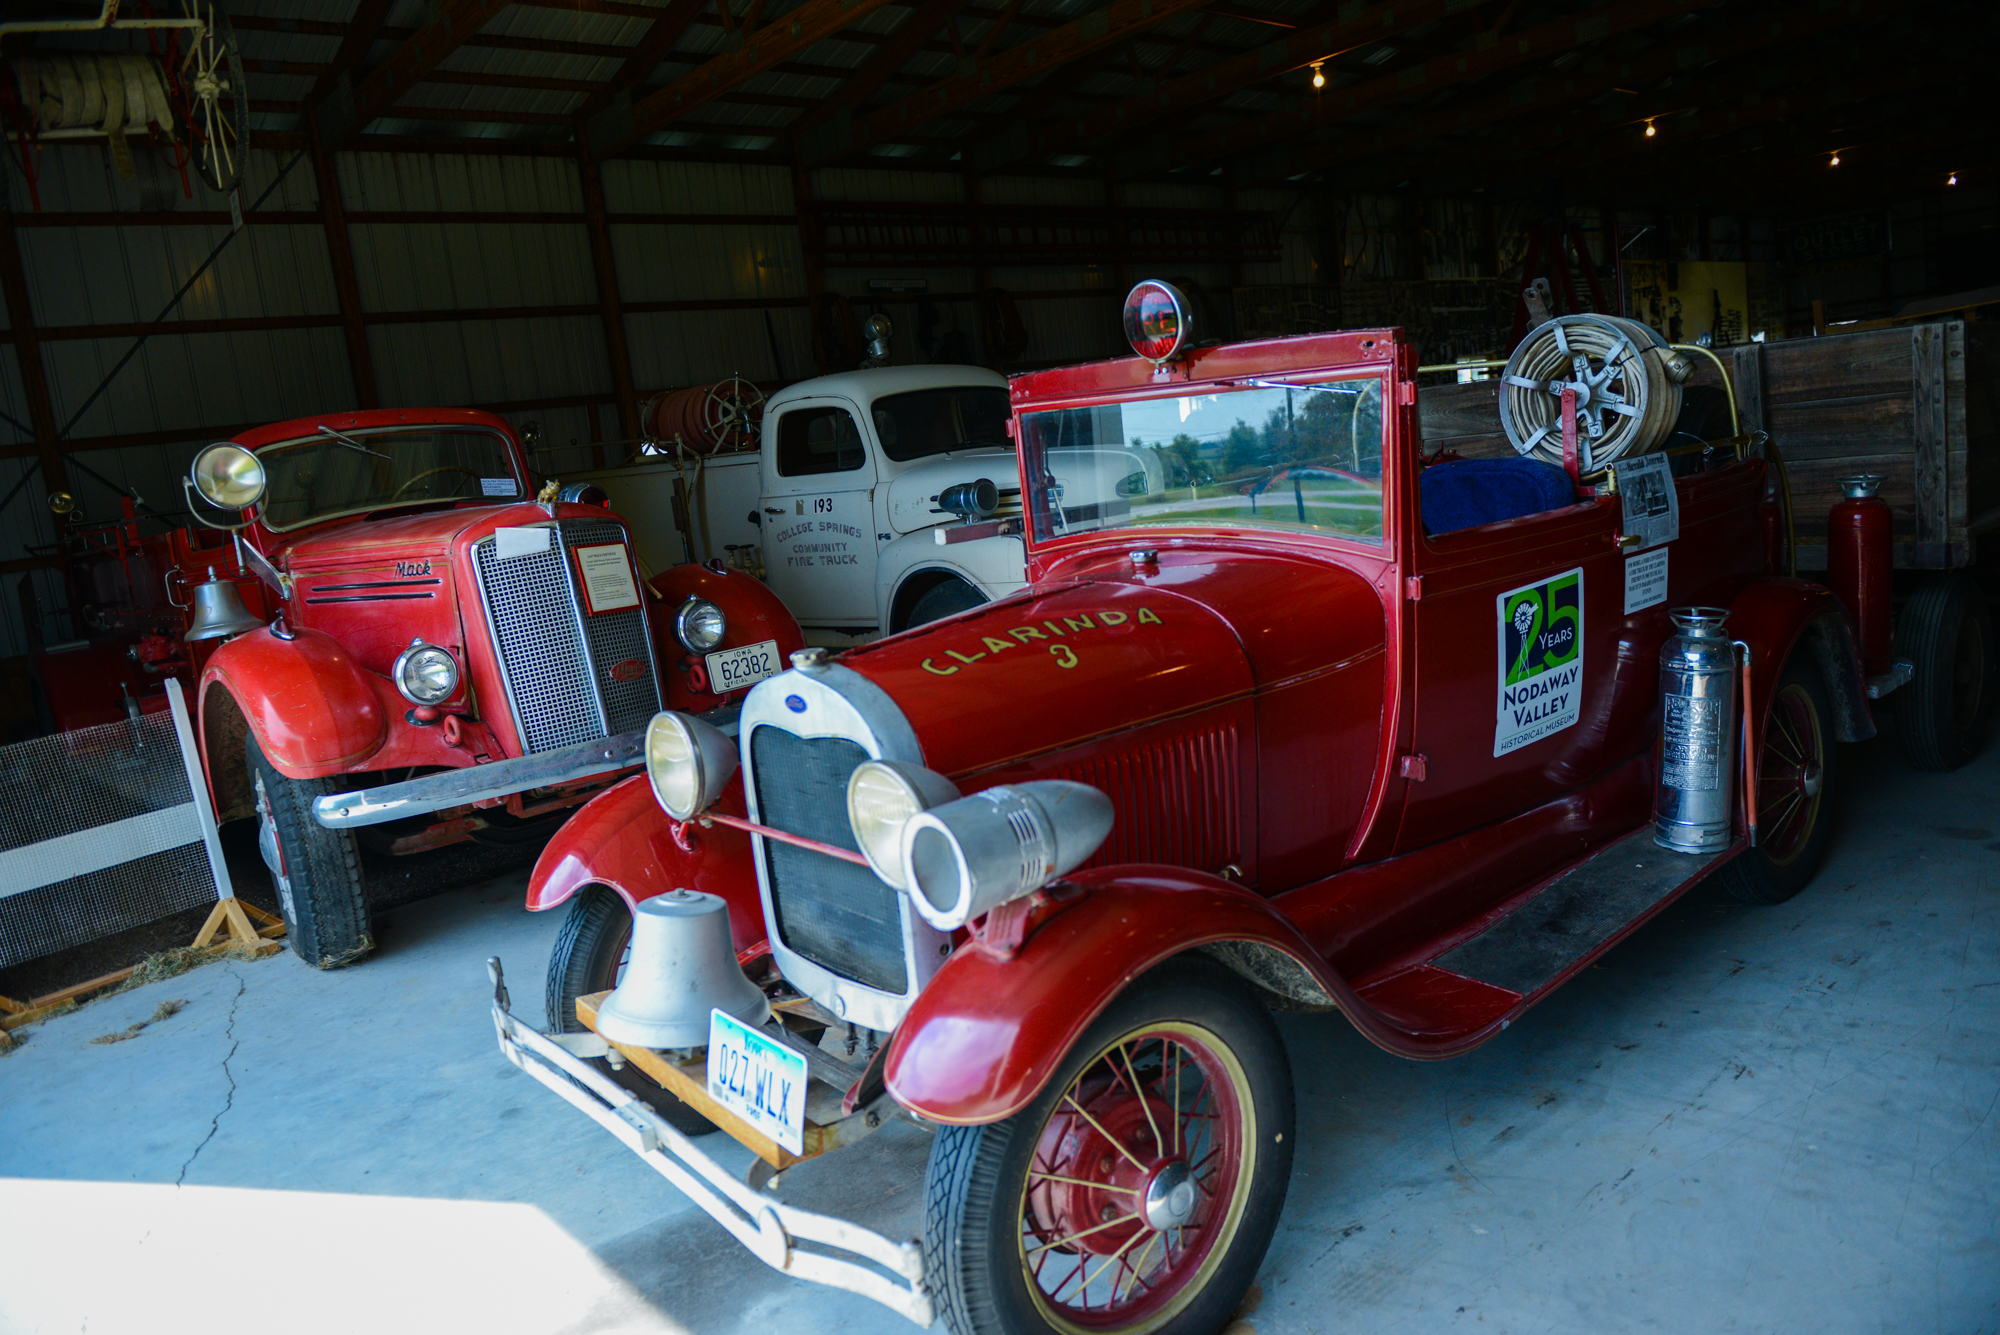 1930 Model A Ford Converted to A Firetruck by the Clarinda Fireman in 1965 to use as a Mascot in Parades and Other events